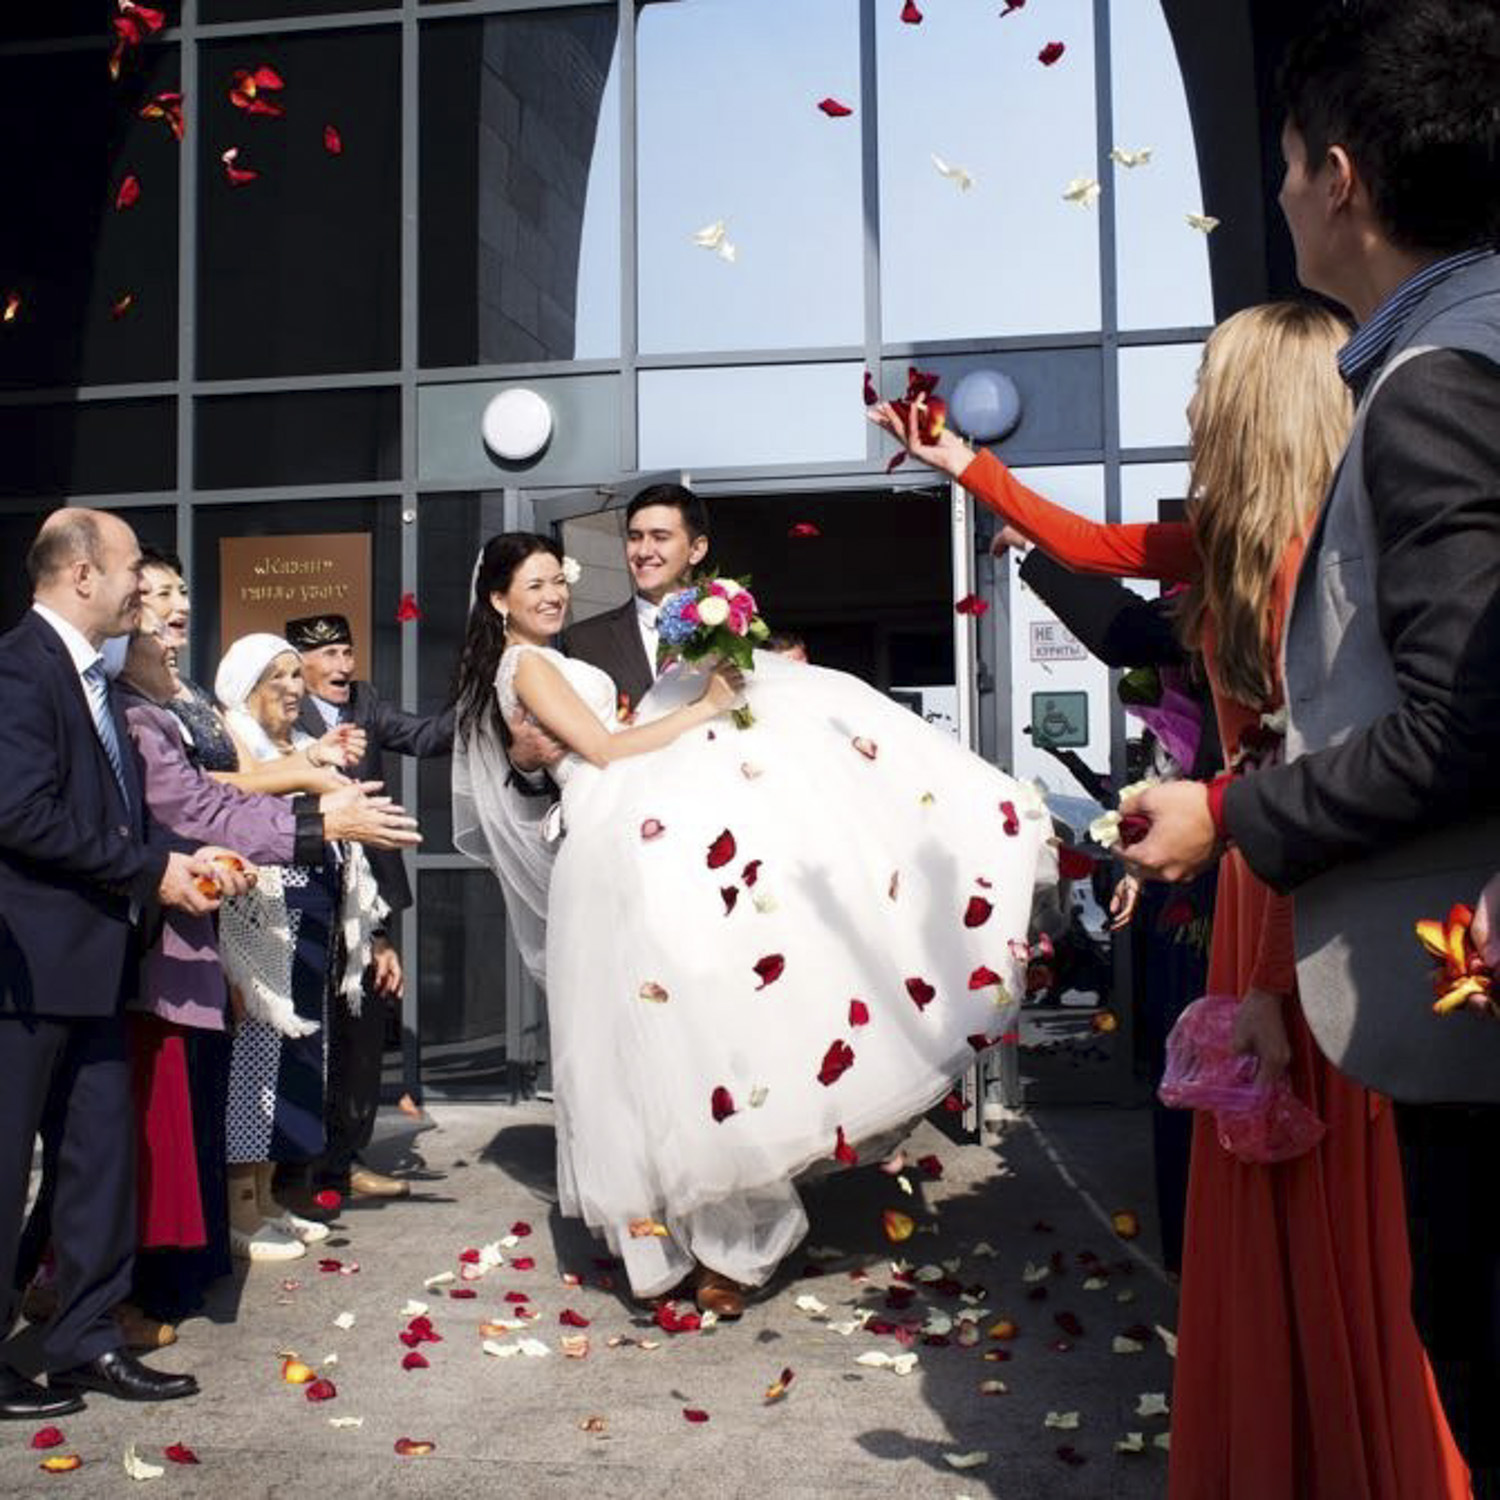 The new registrar office in Kazan (Saks). Wedding parties are processed like on a high speed production line.